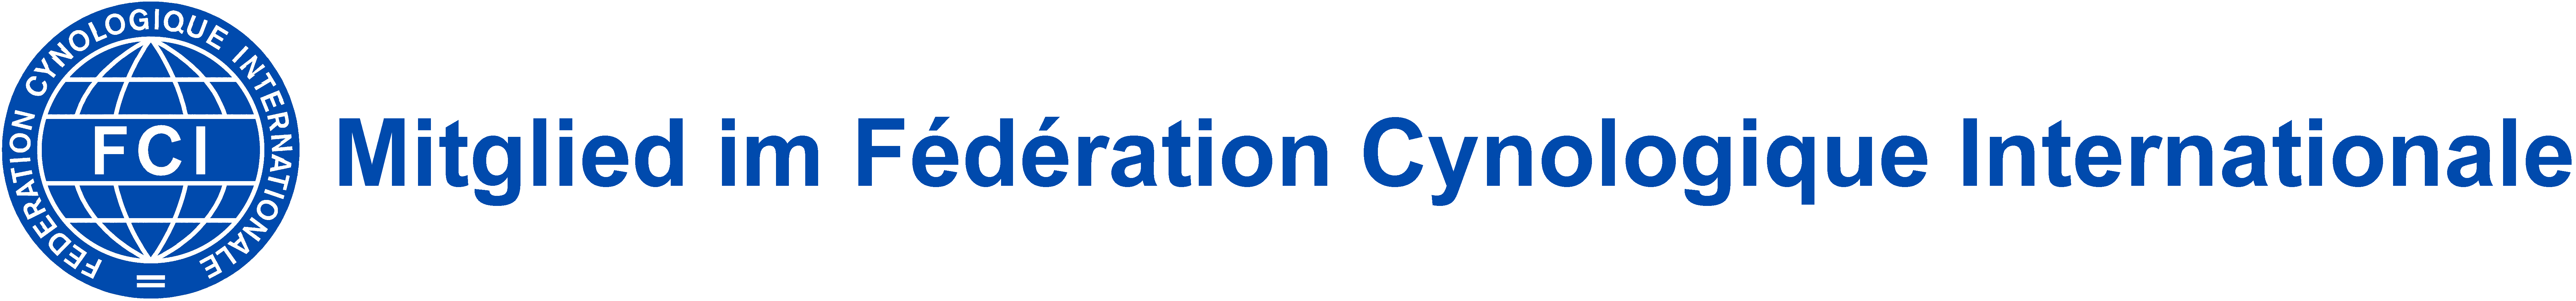 Fédération Cynologique Internationale-Logo